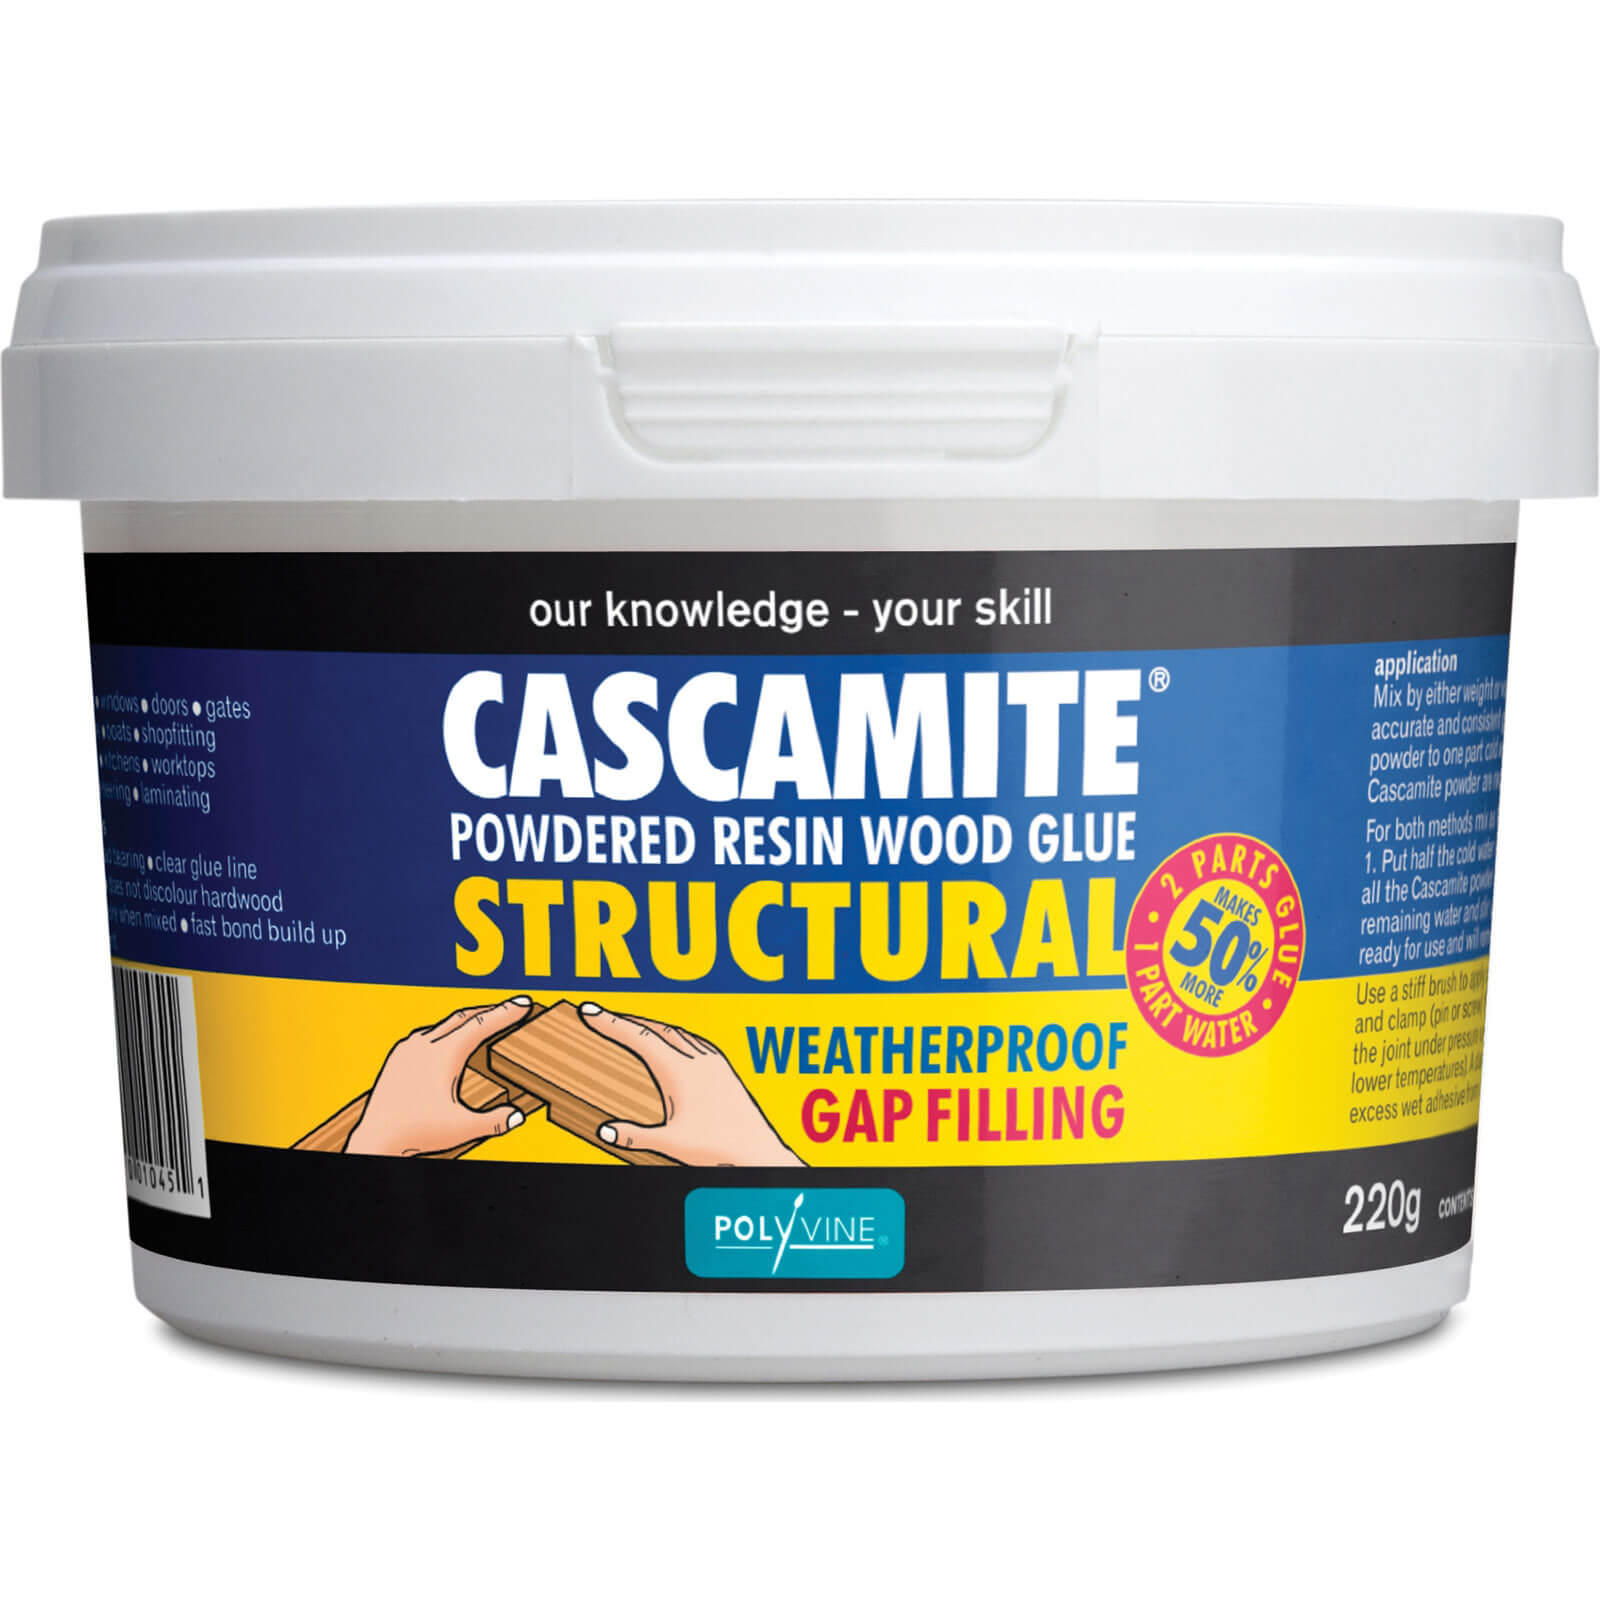 Image of Humbrol Cascamite One Shot Wood Adhesive 220g